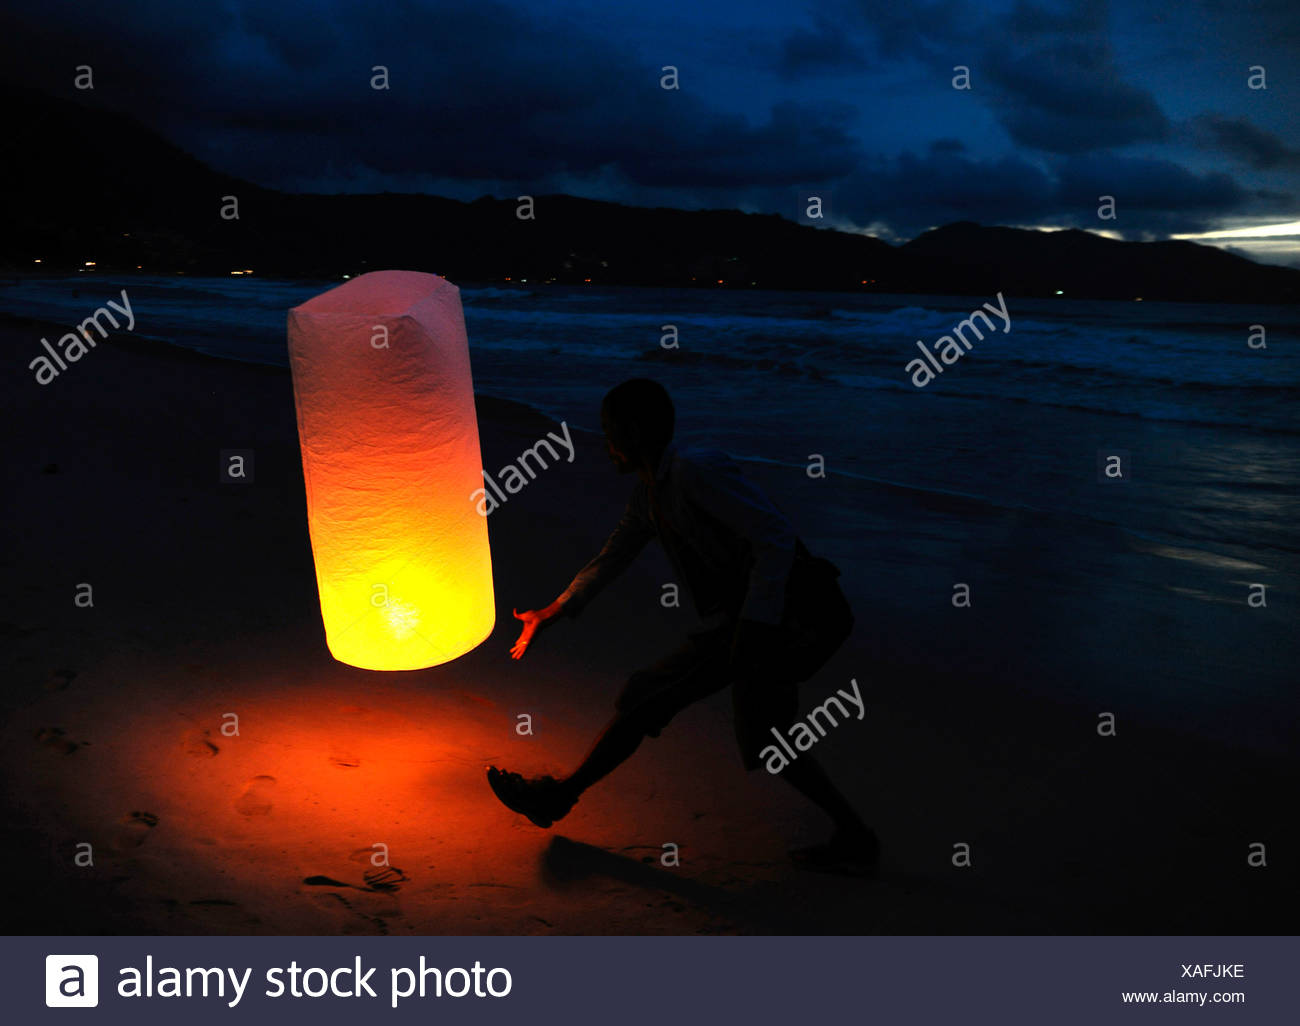 Man with a fortune balloon, Thailand, Asia - Stock Image